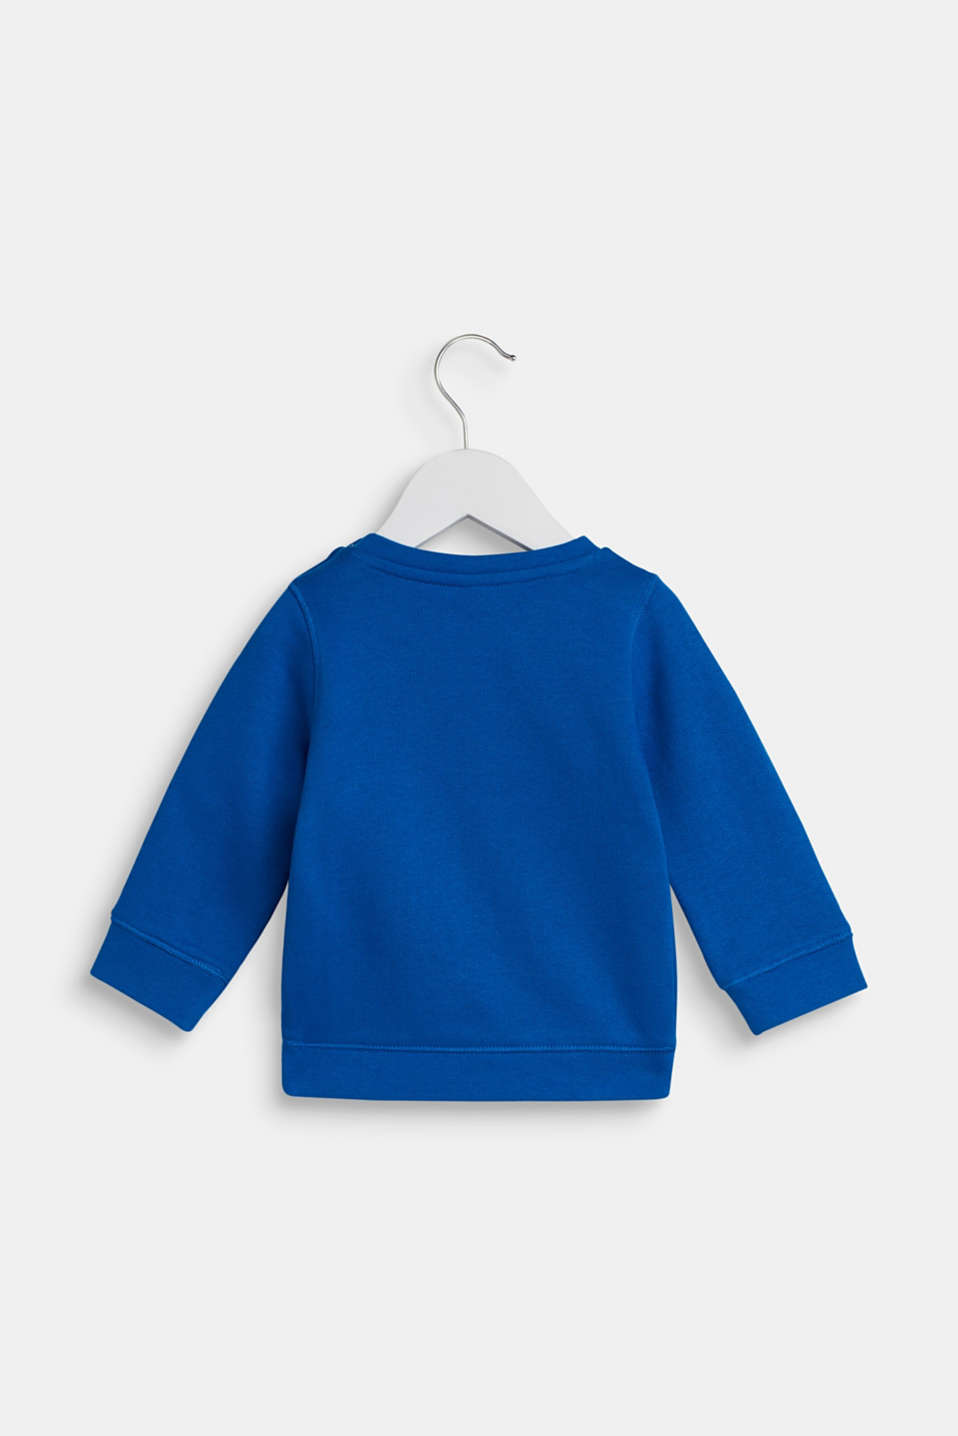 Sweatshirt with a sports motif, 100% cotton, LCBRIGHT BLUE, detail image number 1